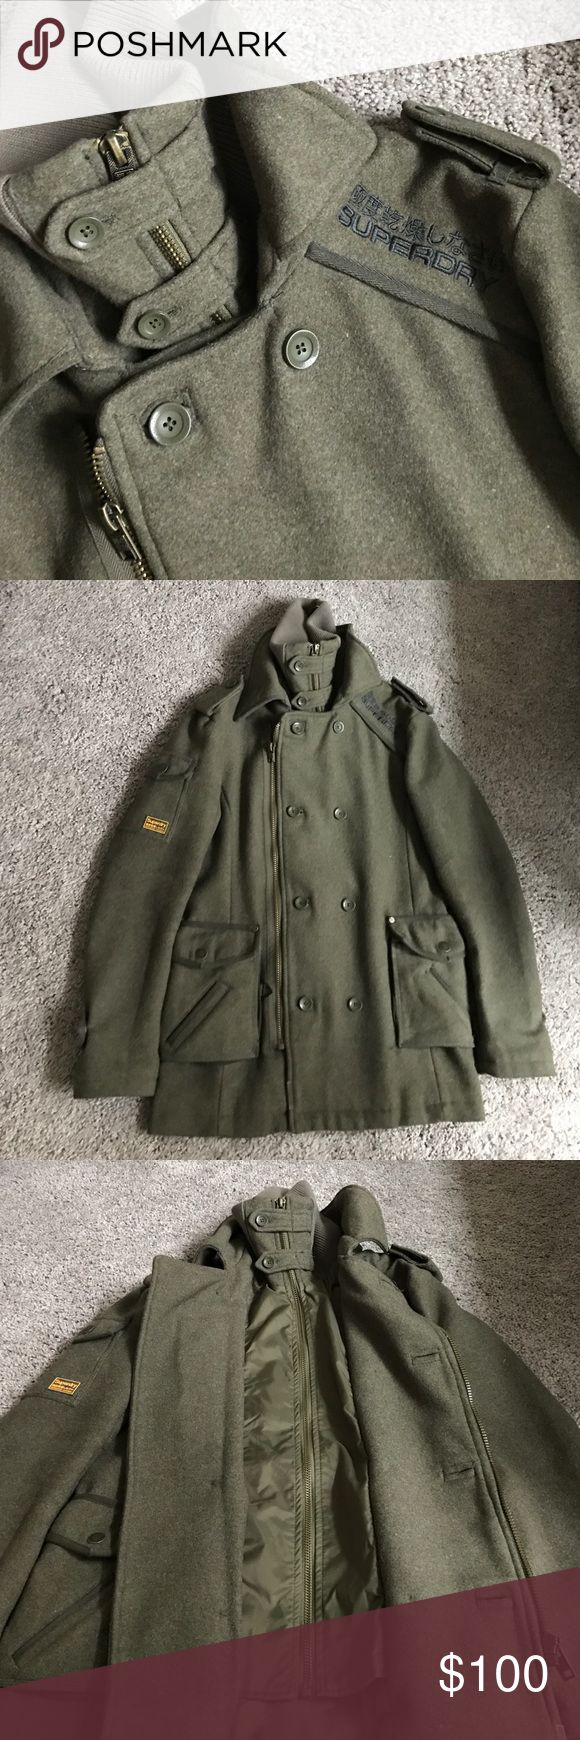 Men's Superdry coat Like new only worn twice for an hour each time. Excellent heavyweight coat for men. Superdry Jackets & Coats Military & Field